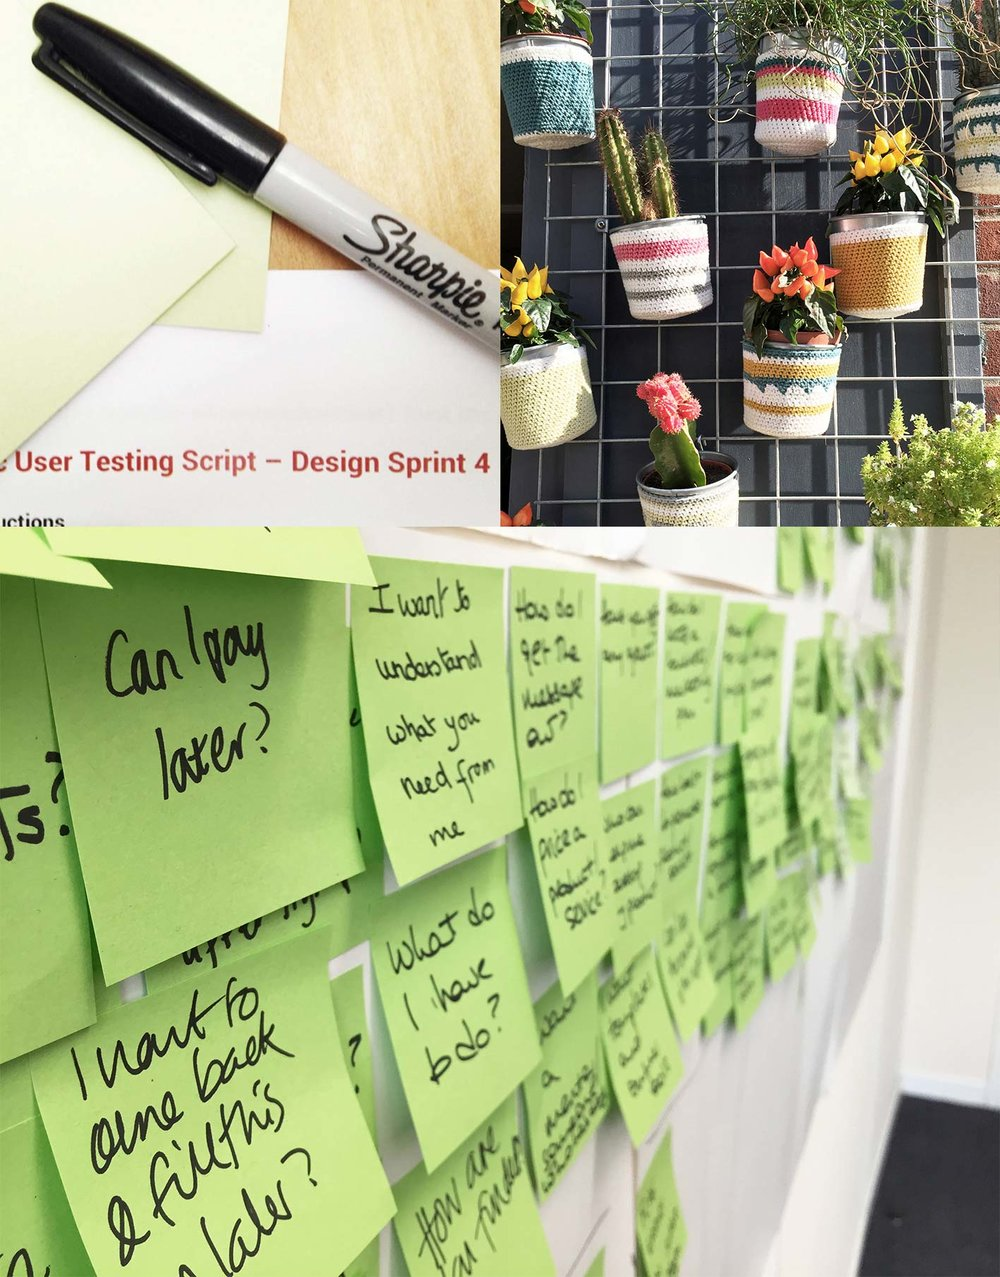 stickynotes-sketching-userexperience-furthermore